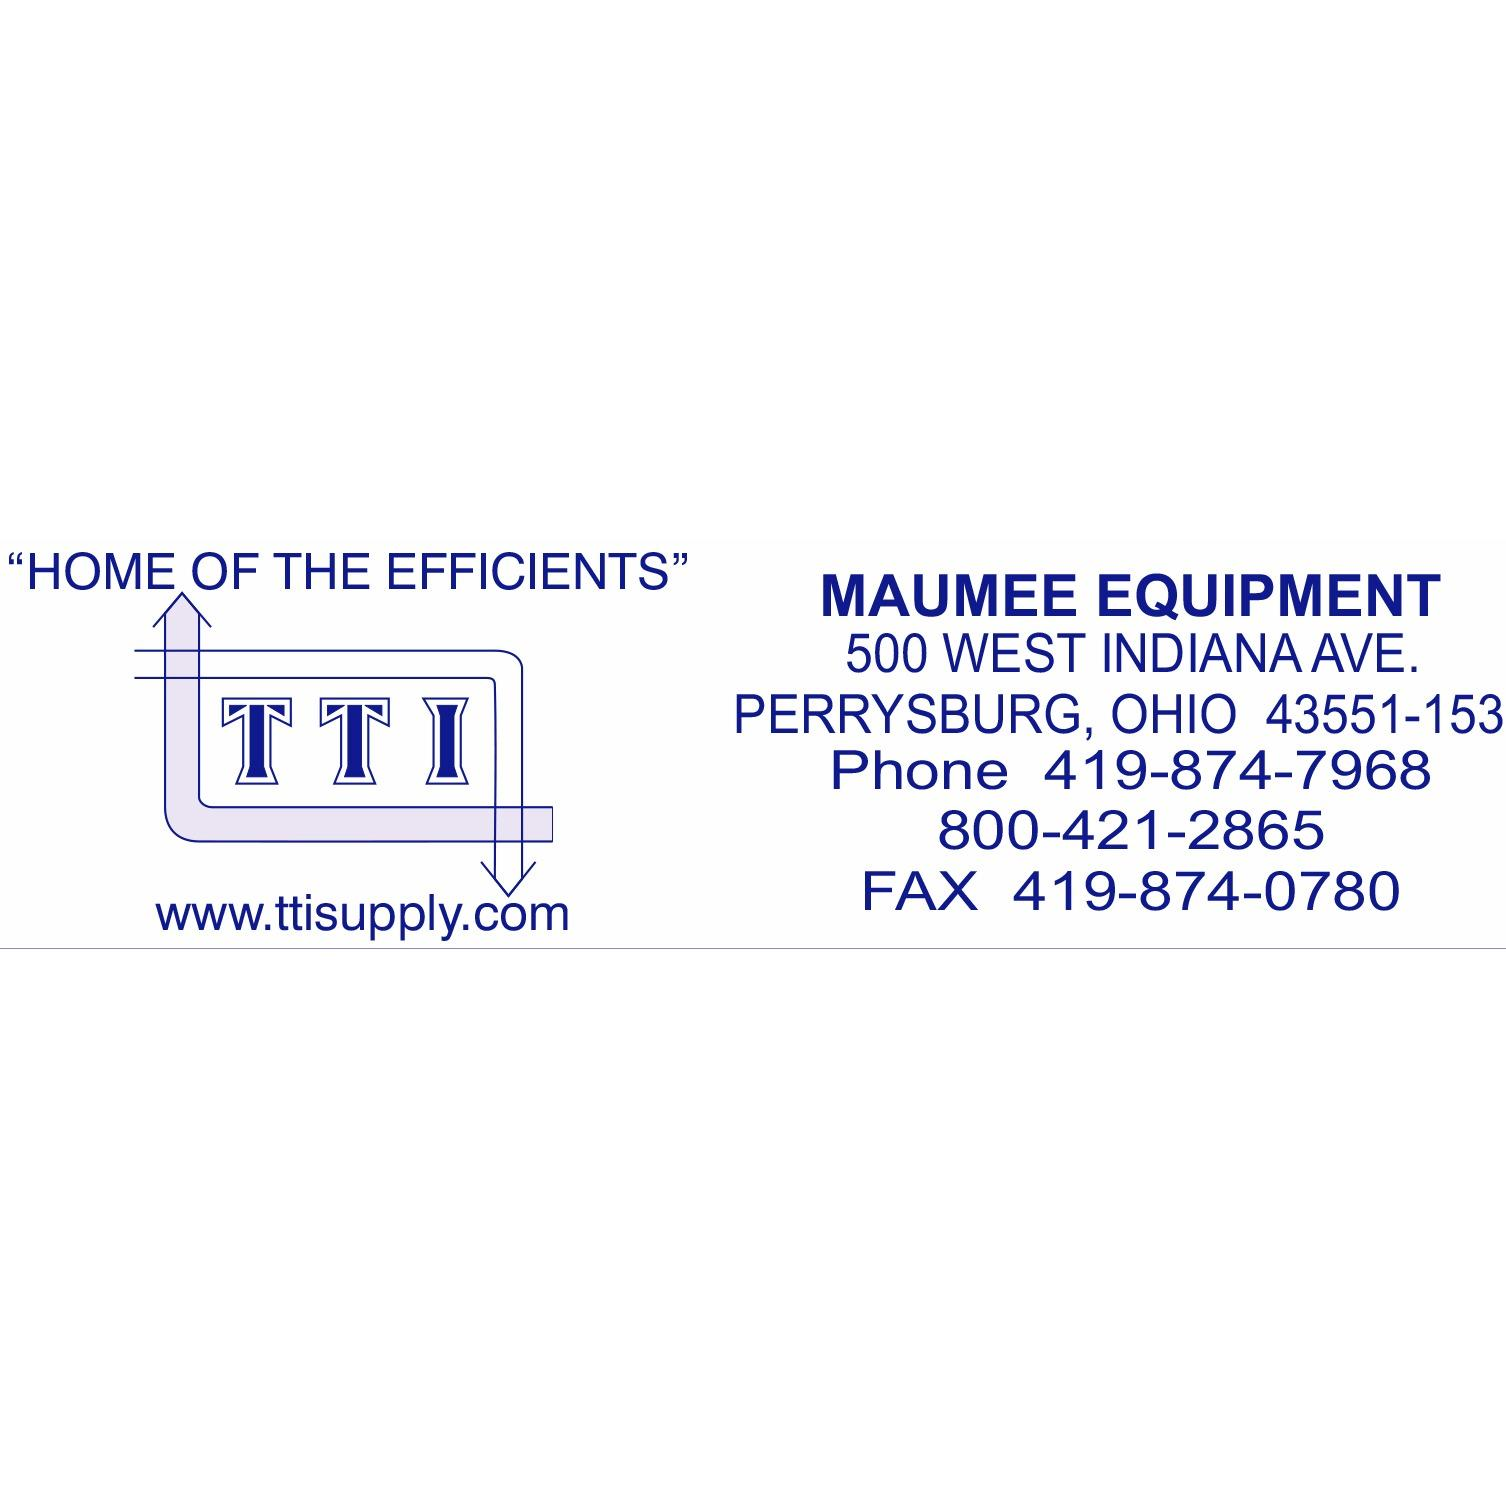 T T I Maumee Equipment In Perrysburg Oh 43551